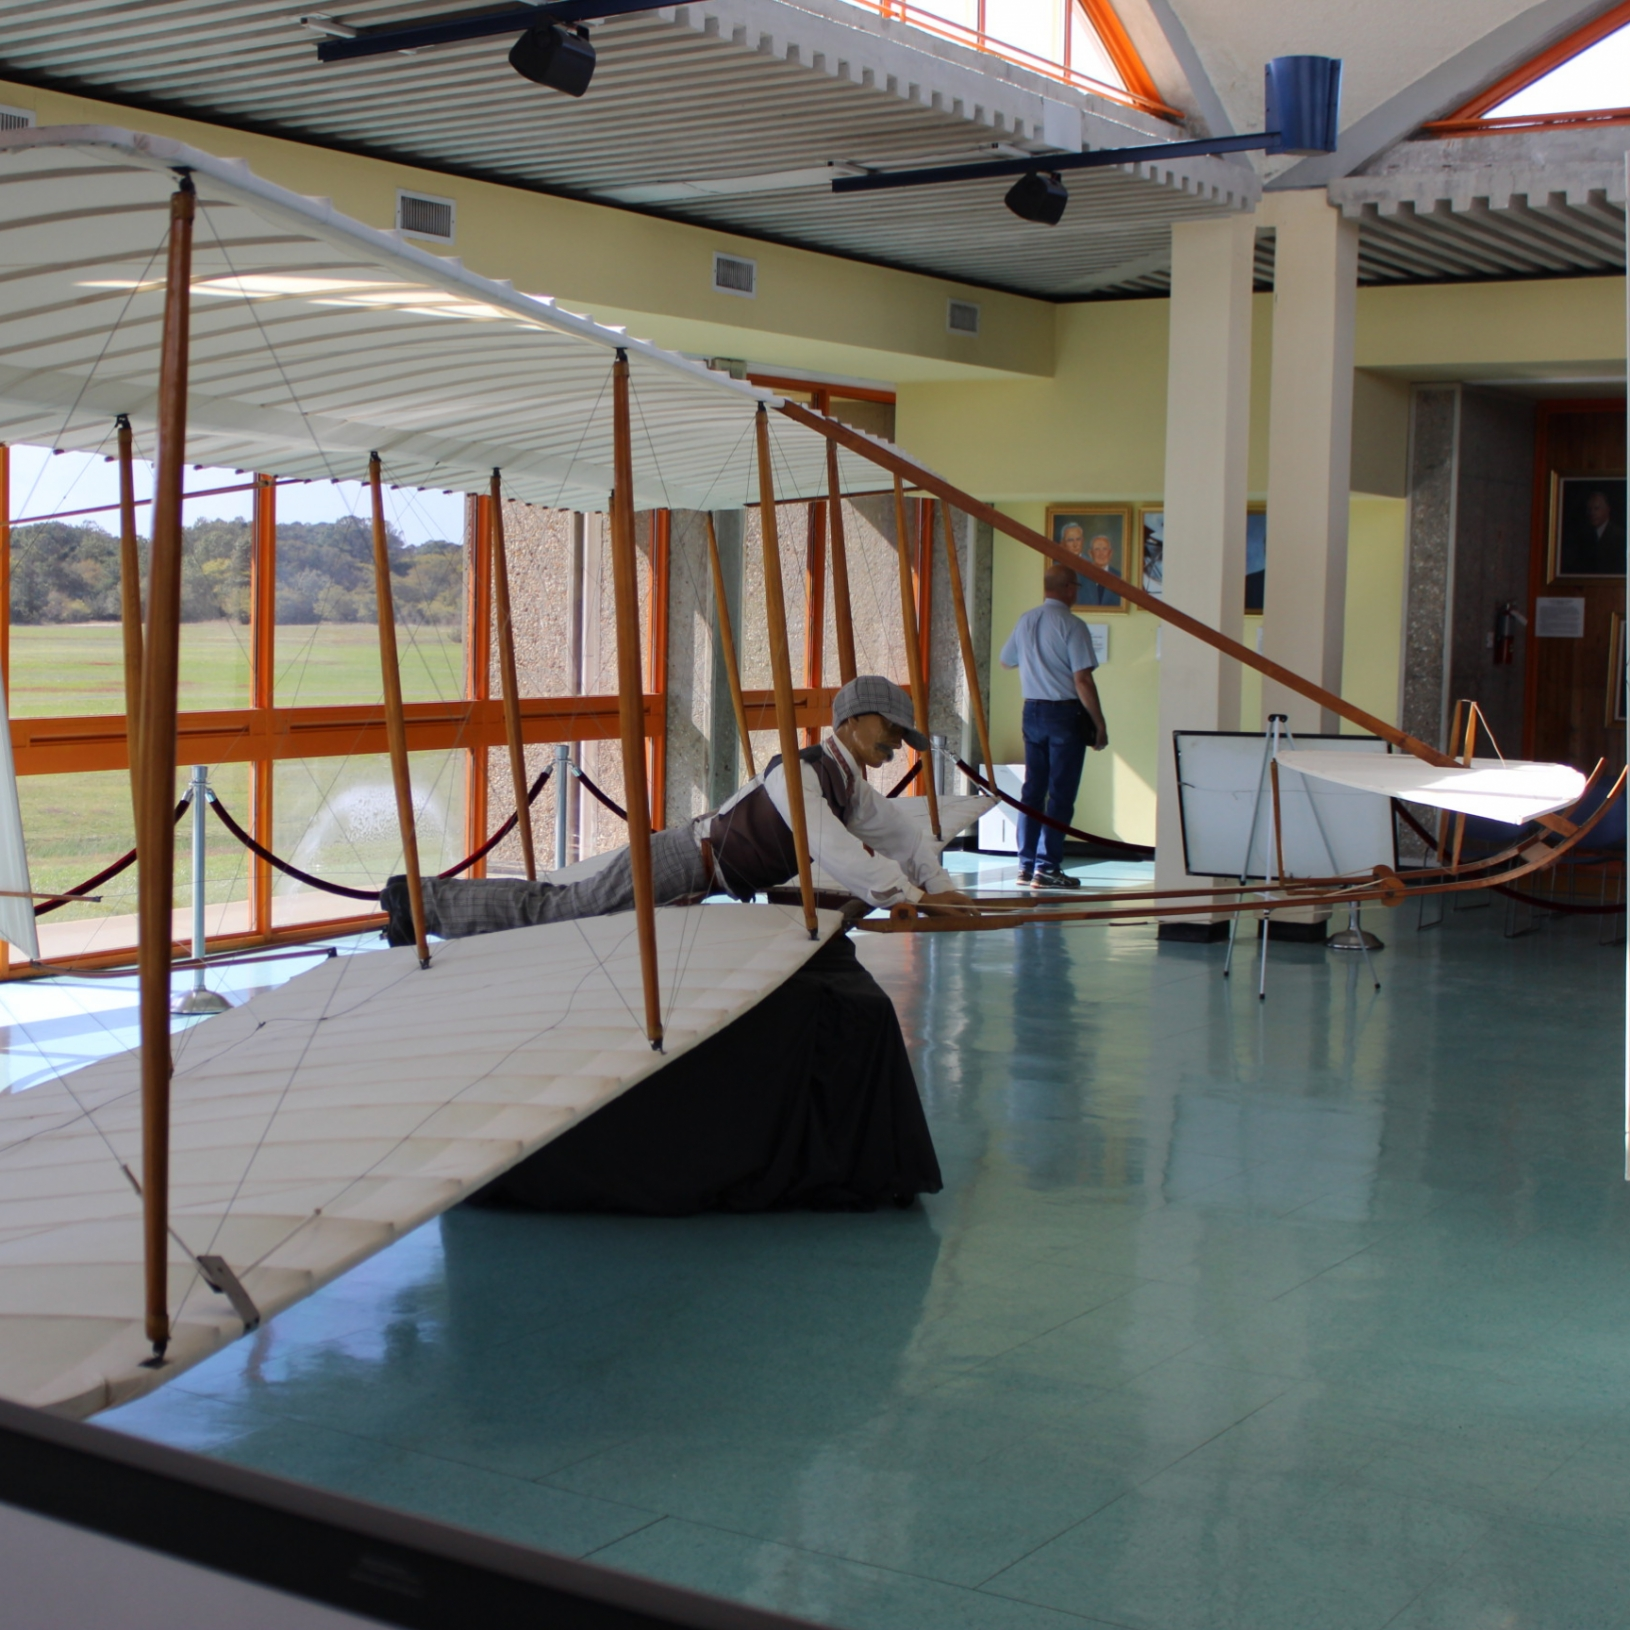 This is a full scale model of the Wright Brothers' plane, demonstrating how you would operate it.